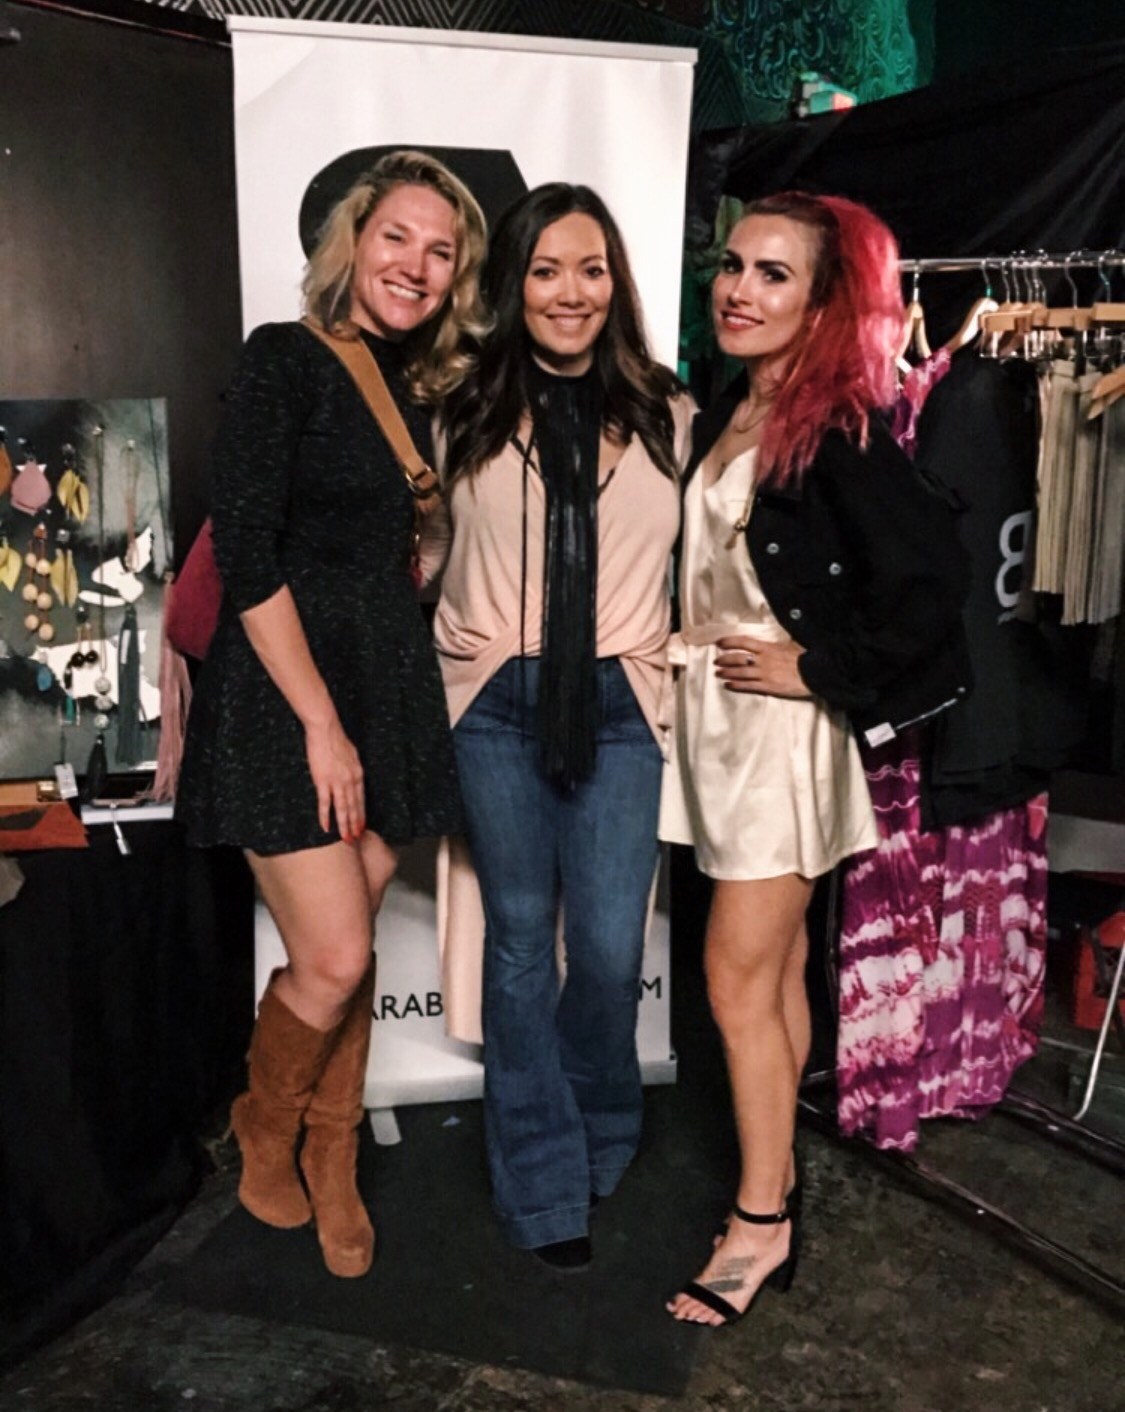 Photo from the Night Market with  (from left to right)  local designers, Barbara Bultman and Elise Kristine